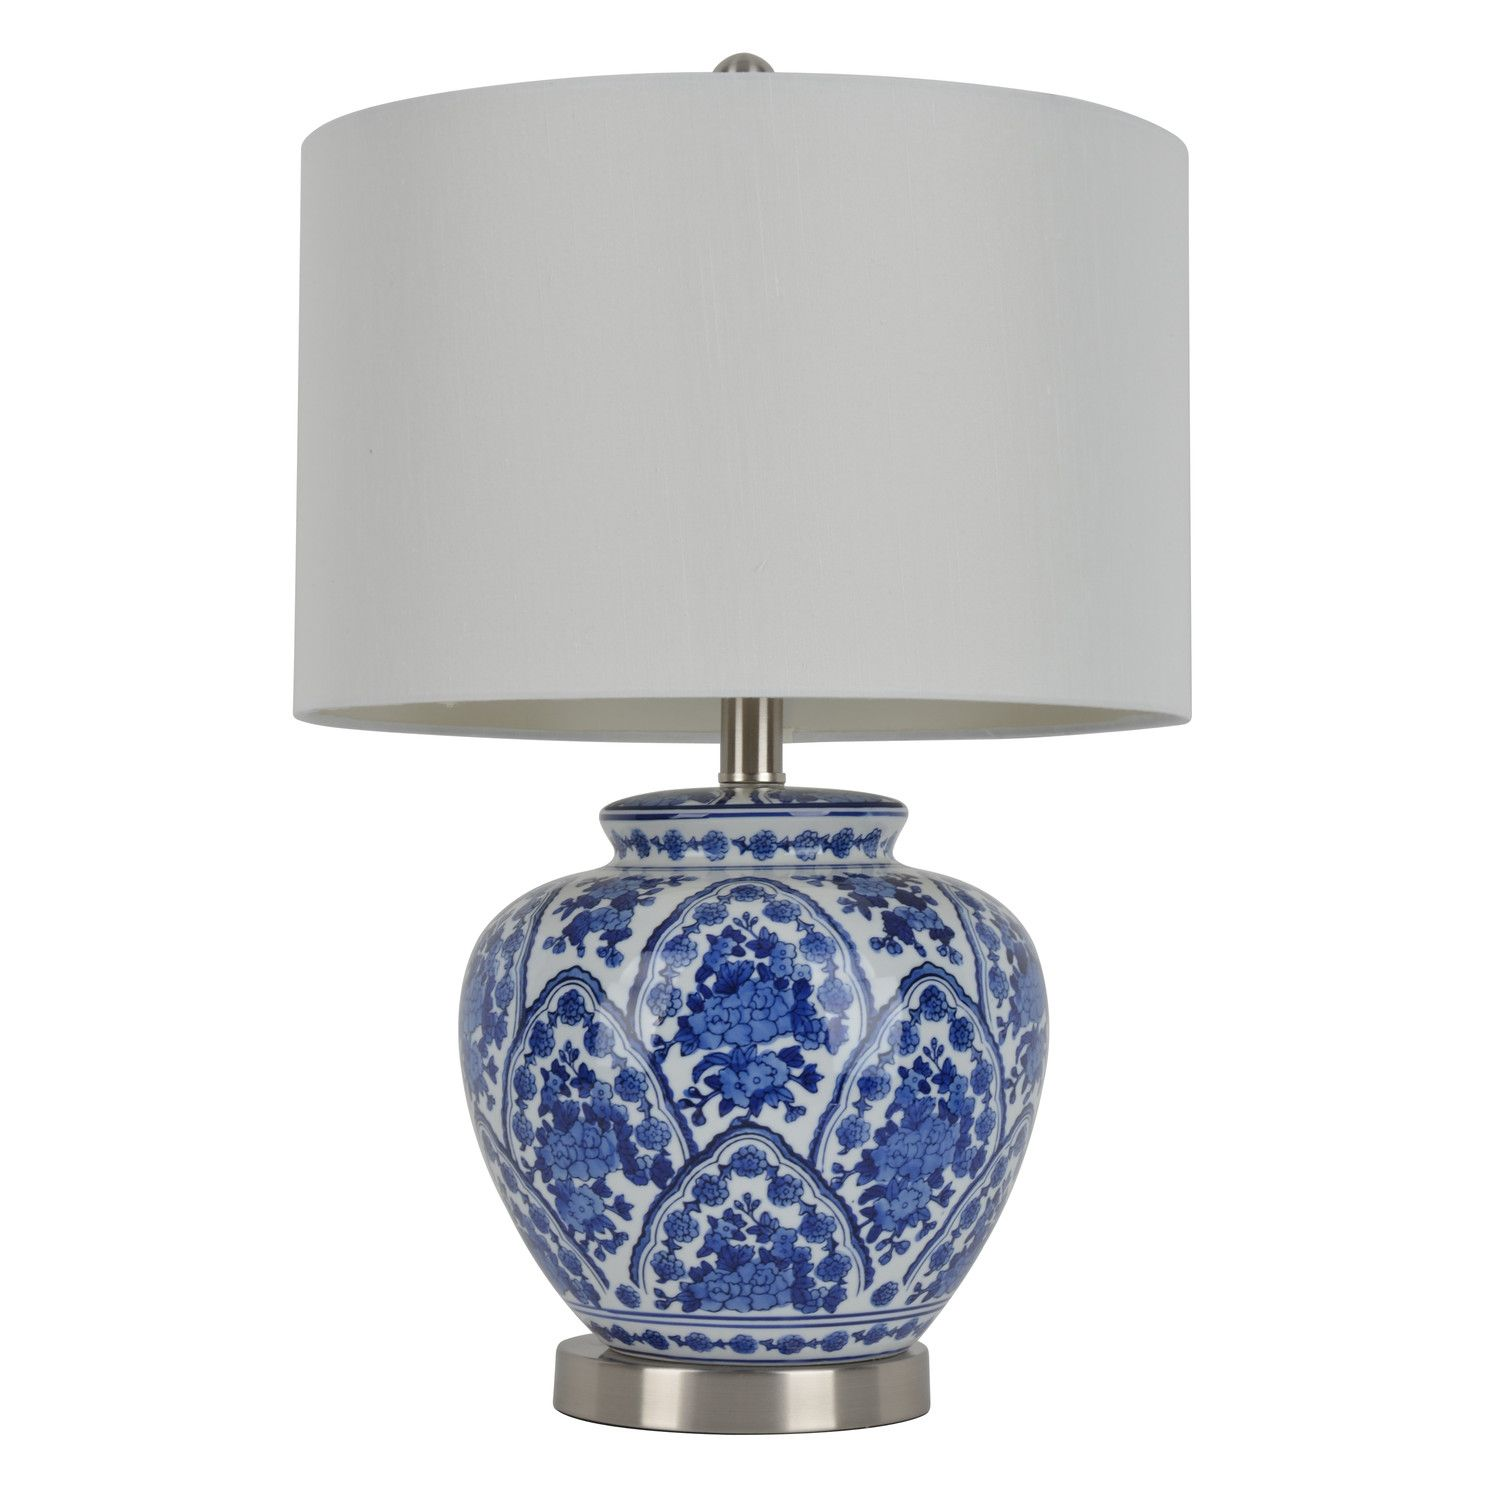 J Hunt Home 20 H Table Lamp With Drum Shade Blue And White Lamp Decor Therapy Table Lamp